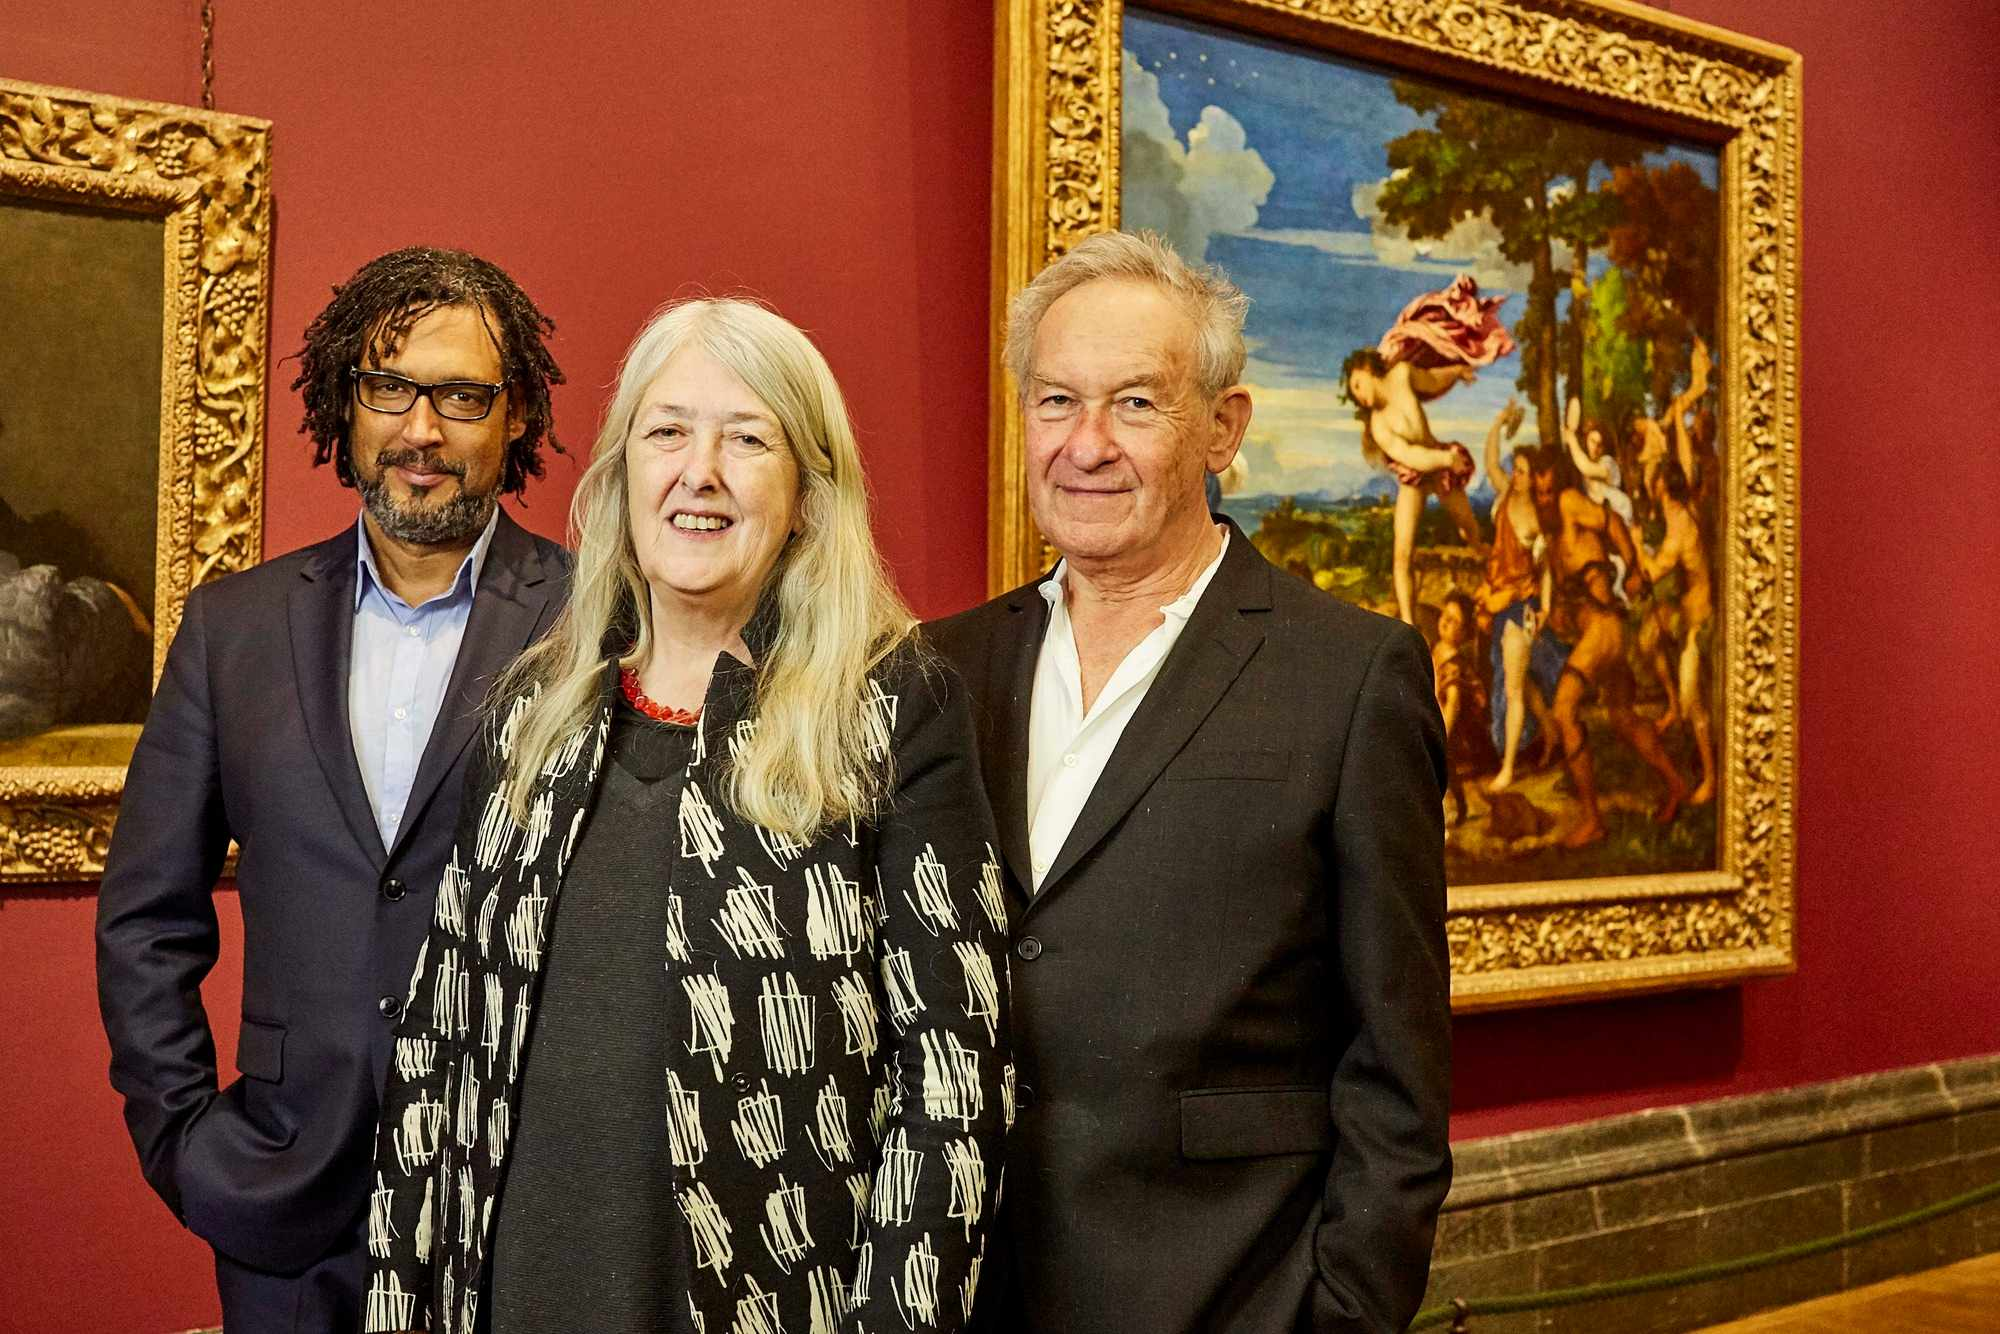 David Olusoga, Mary Beard and Simon